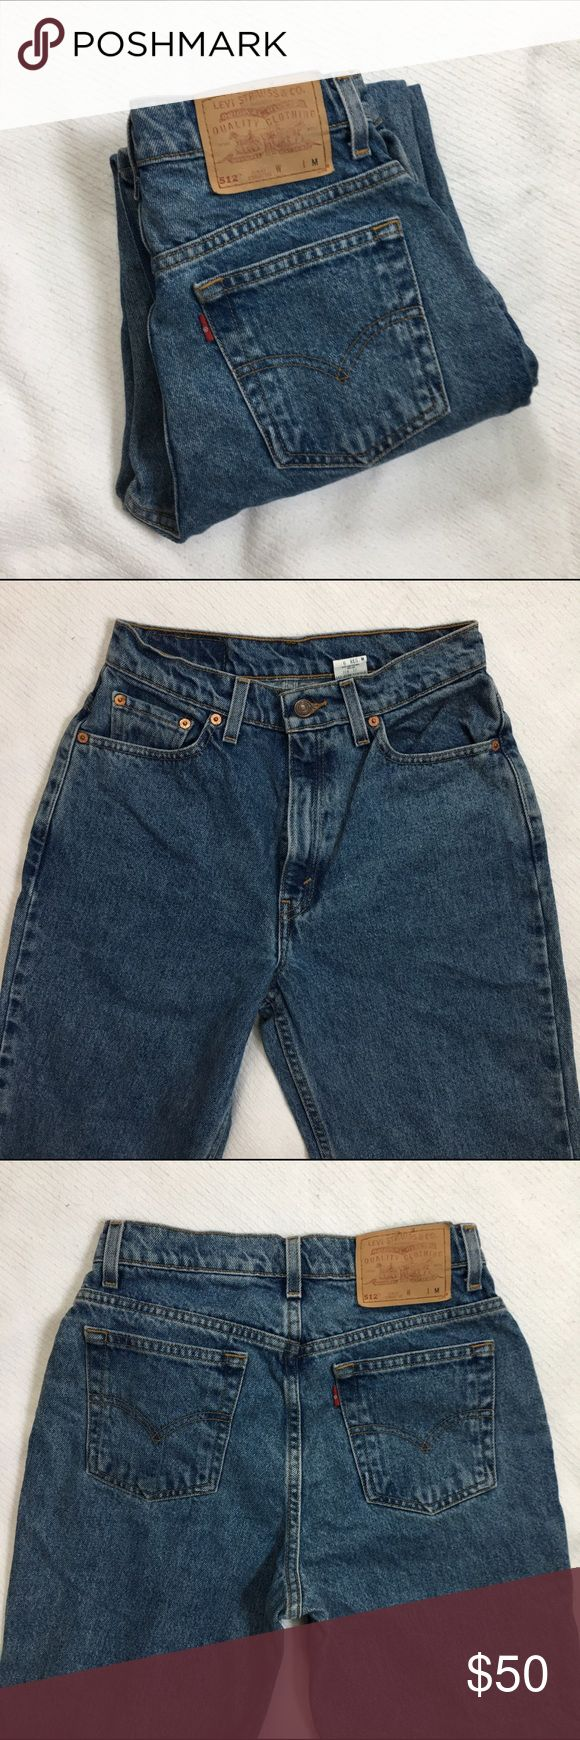 "Vintage Levi's 512 Mom Jeans Vintage Levi's 512 jeans in a really cool wash I've never seen before! The 512 is a slim fit, straight leg jean. Size 6 Reg M. Approximate measurements (taken laid flat): 26"" waist, 38"" hips, 11"" front rise, 30"" inseam. #levis #levi #512 #512s #jeans #vintage Levi's Jeans Skinny"